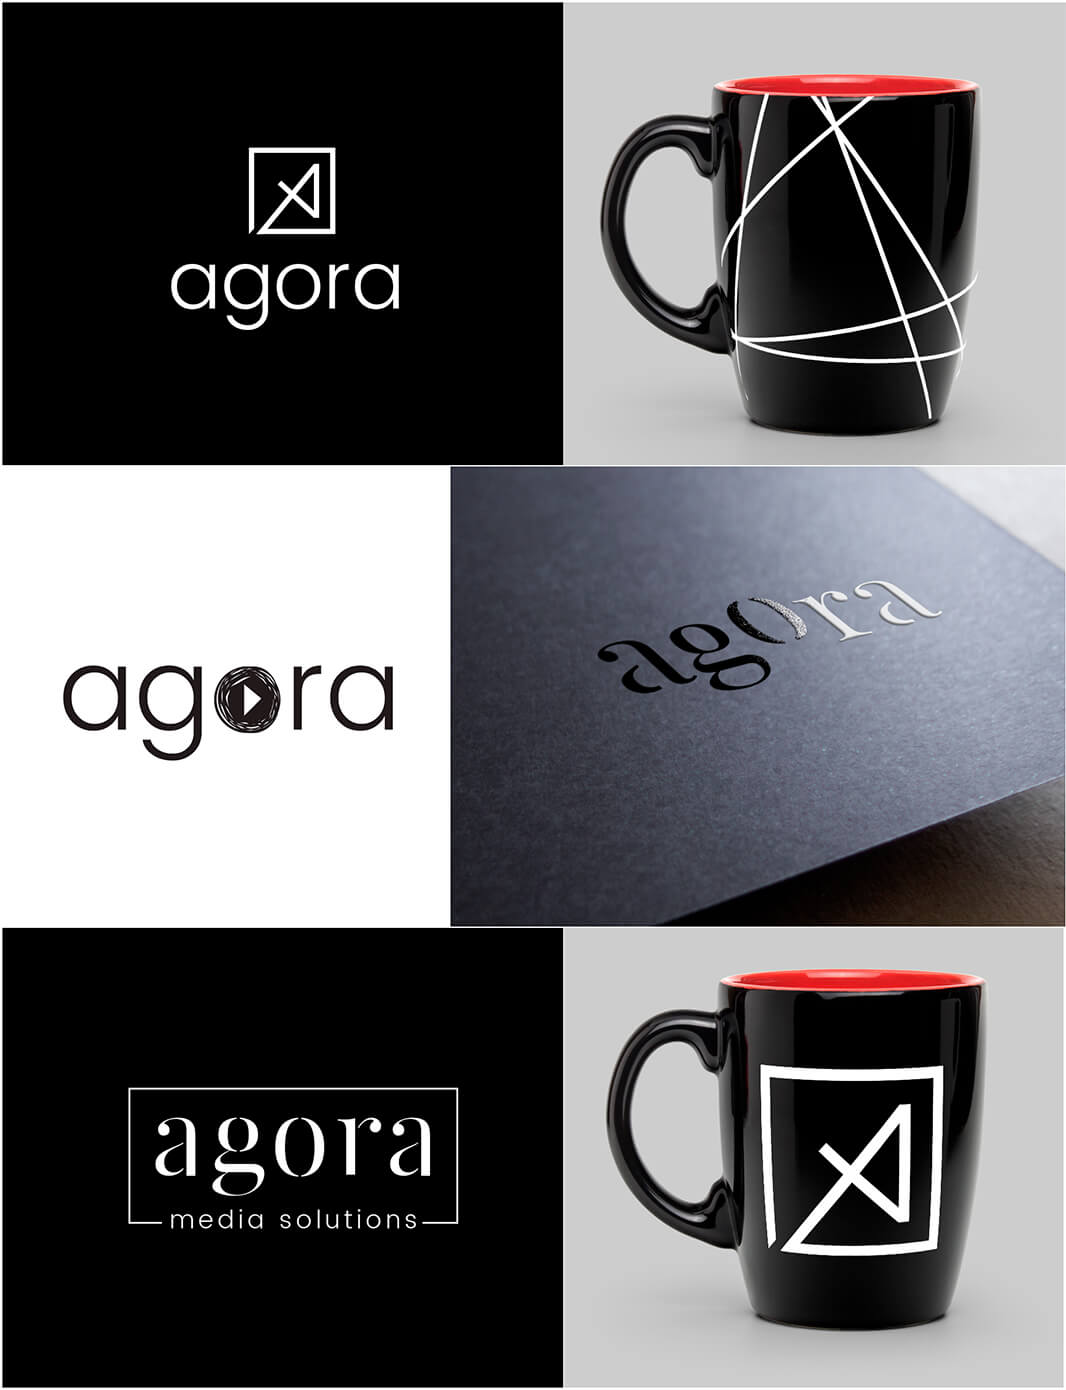 Agora Media Solutions logo variations